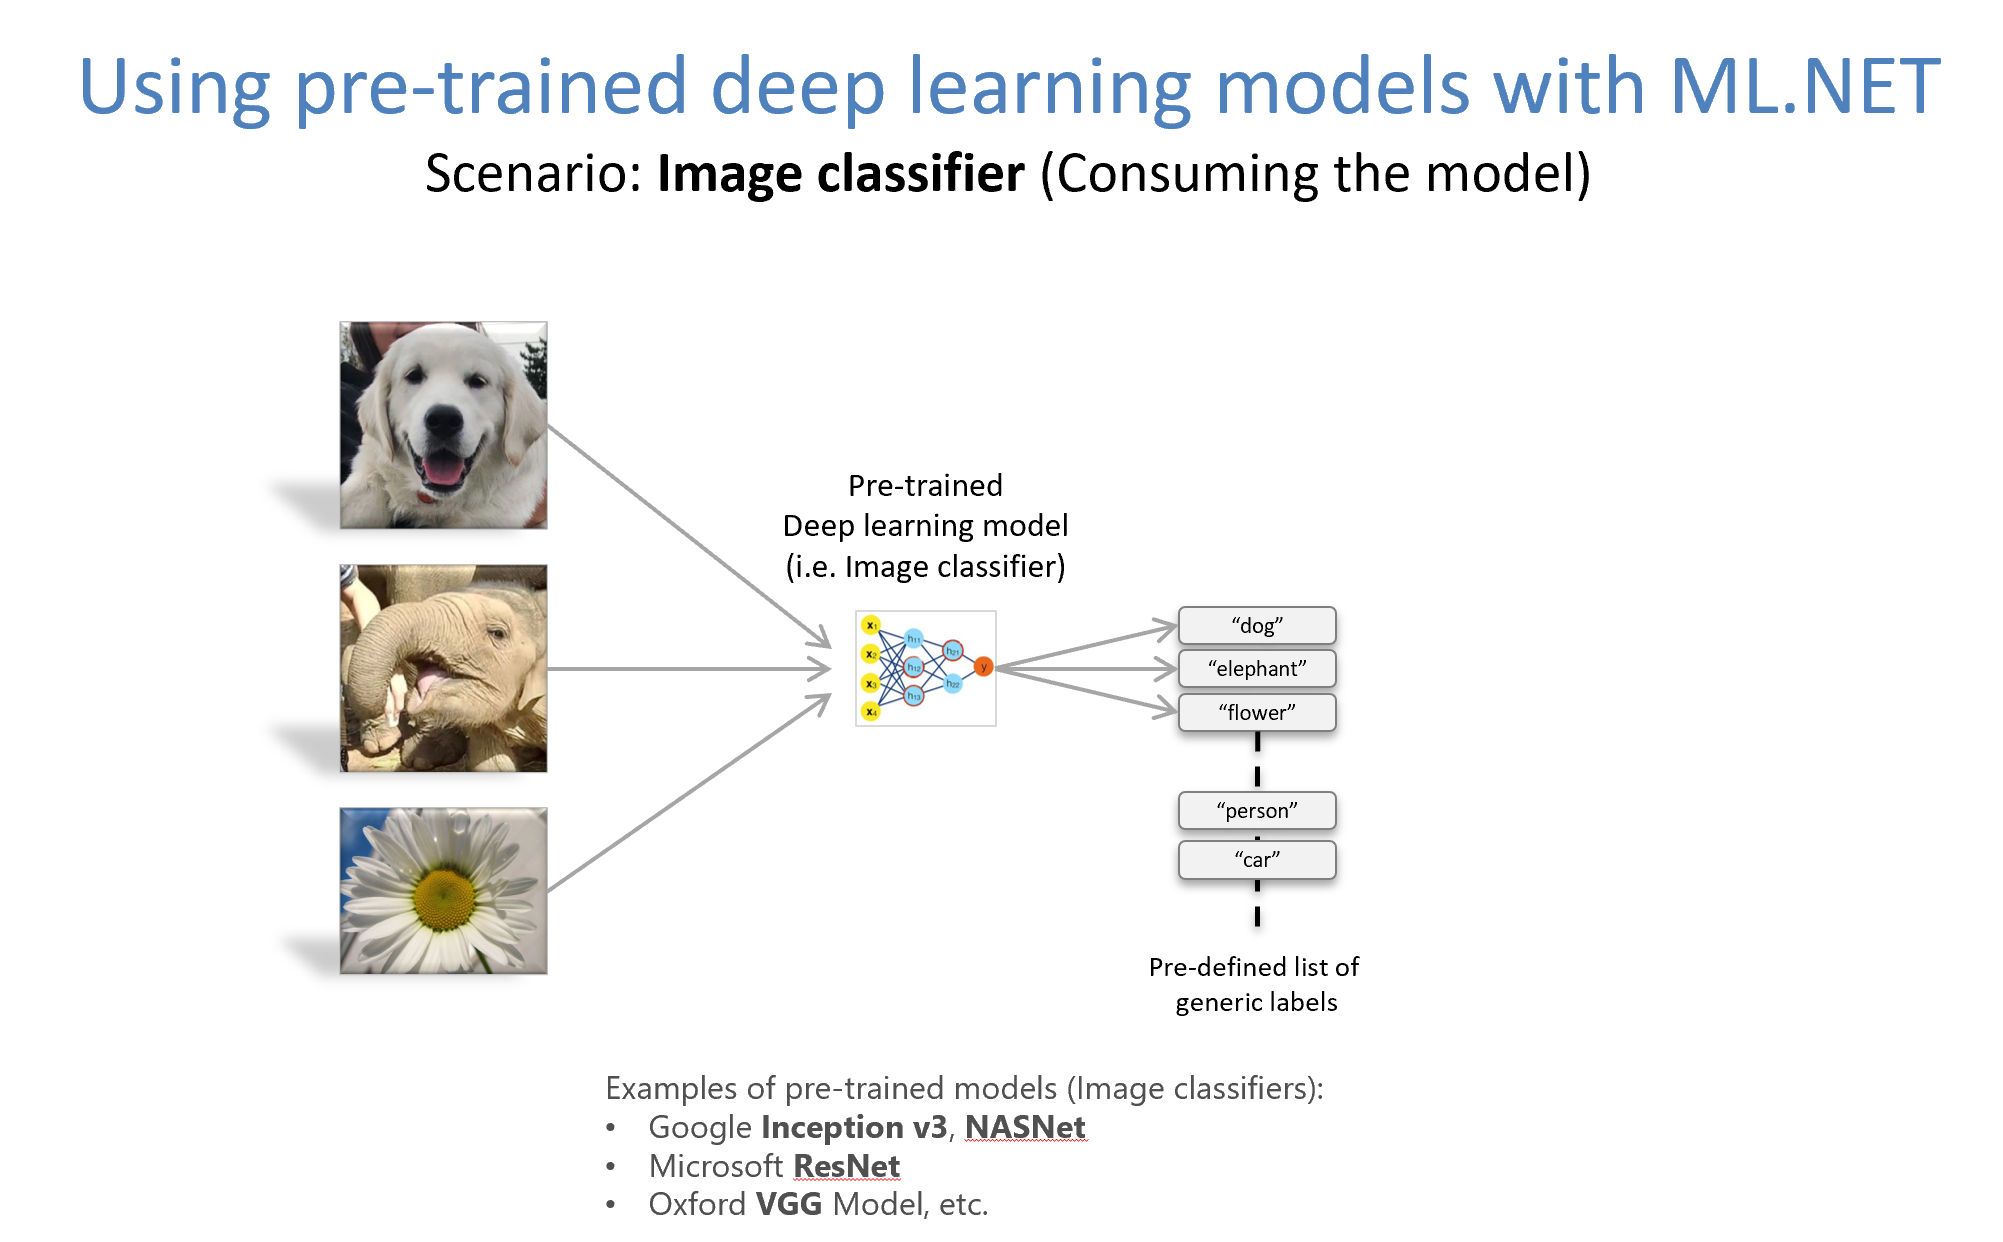 Training Image Classification/Recognition models based on